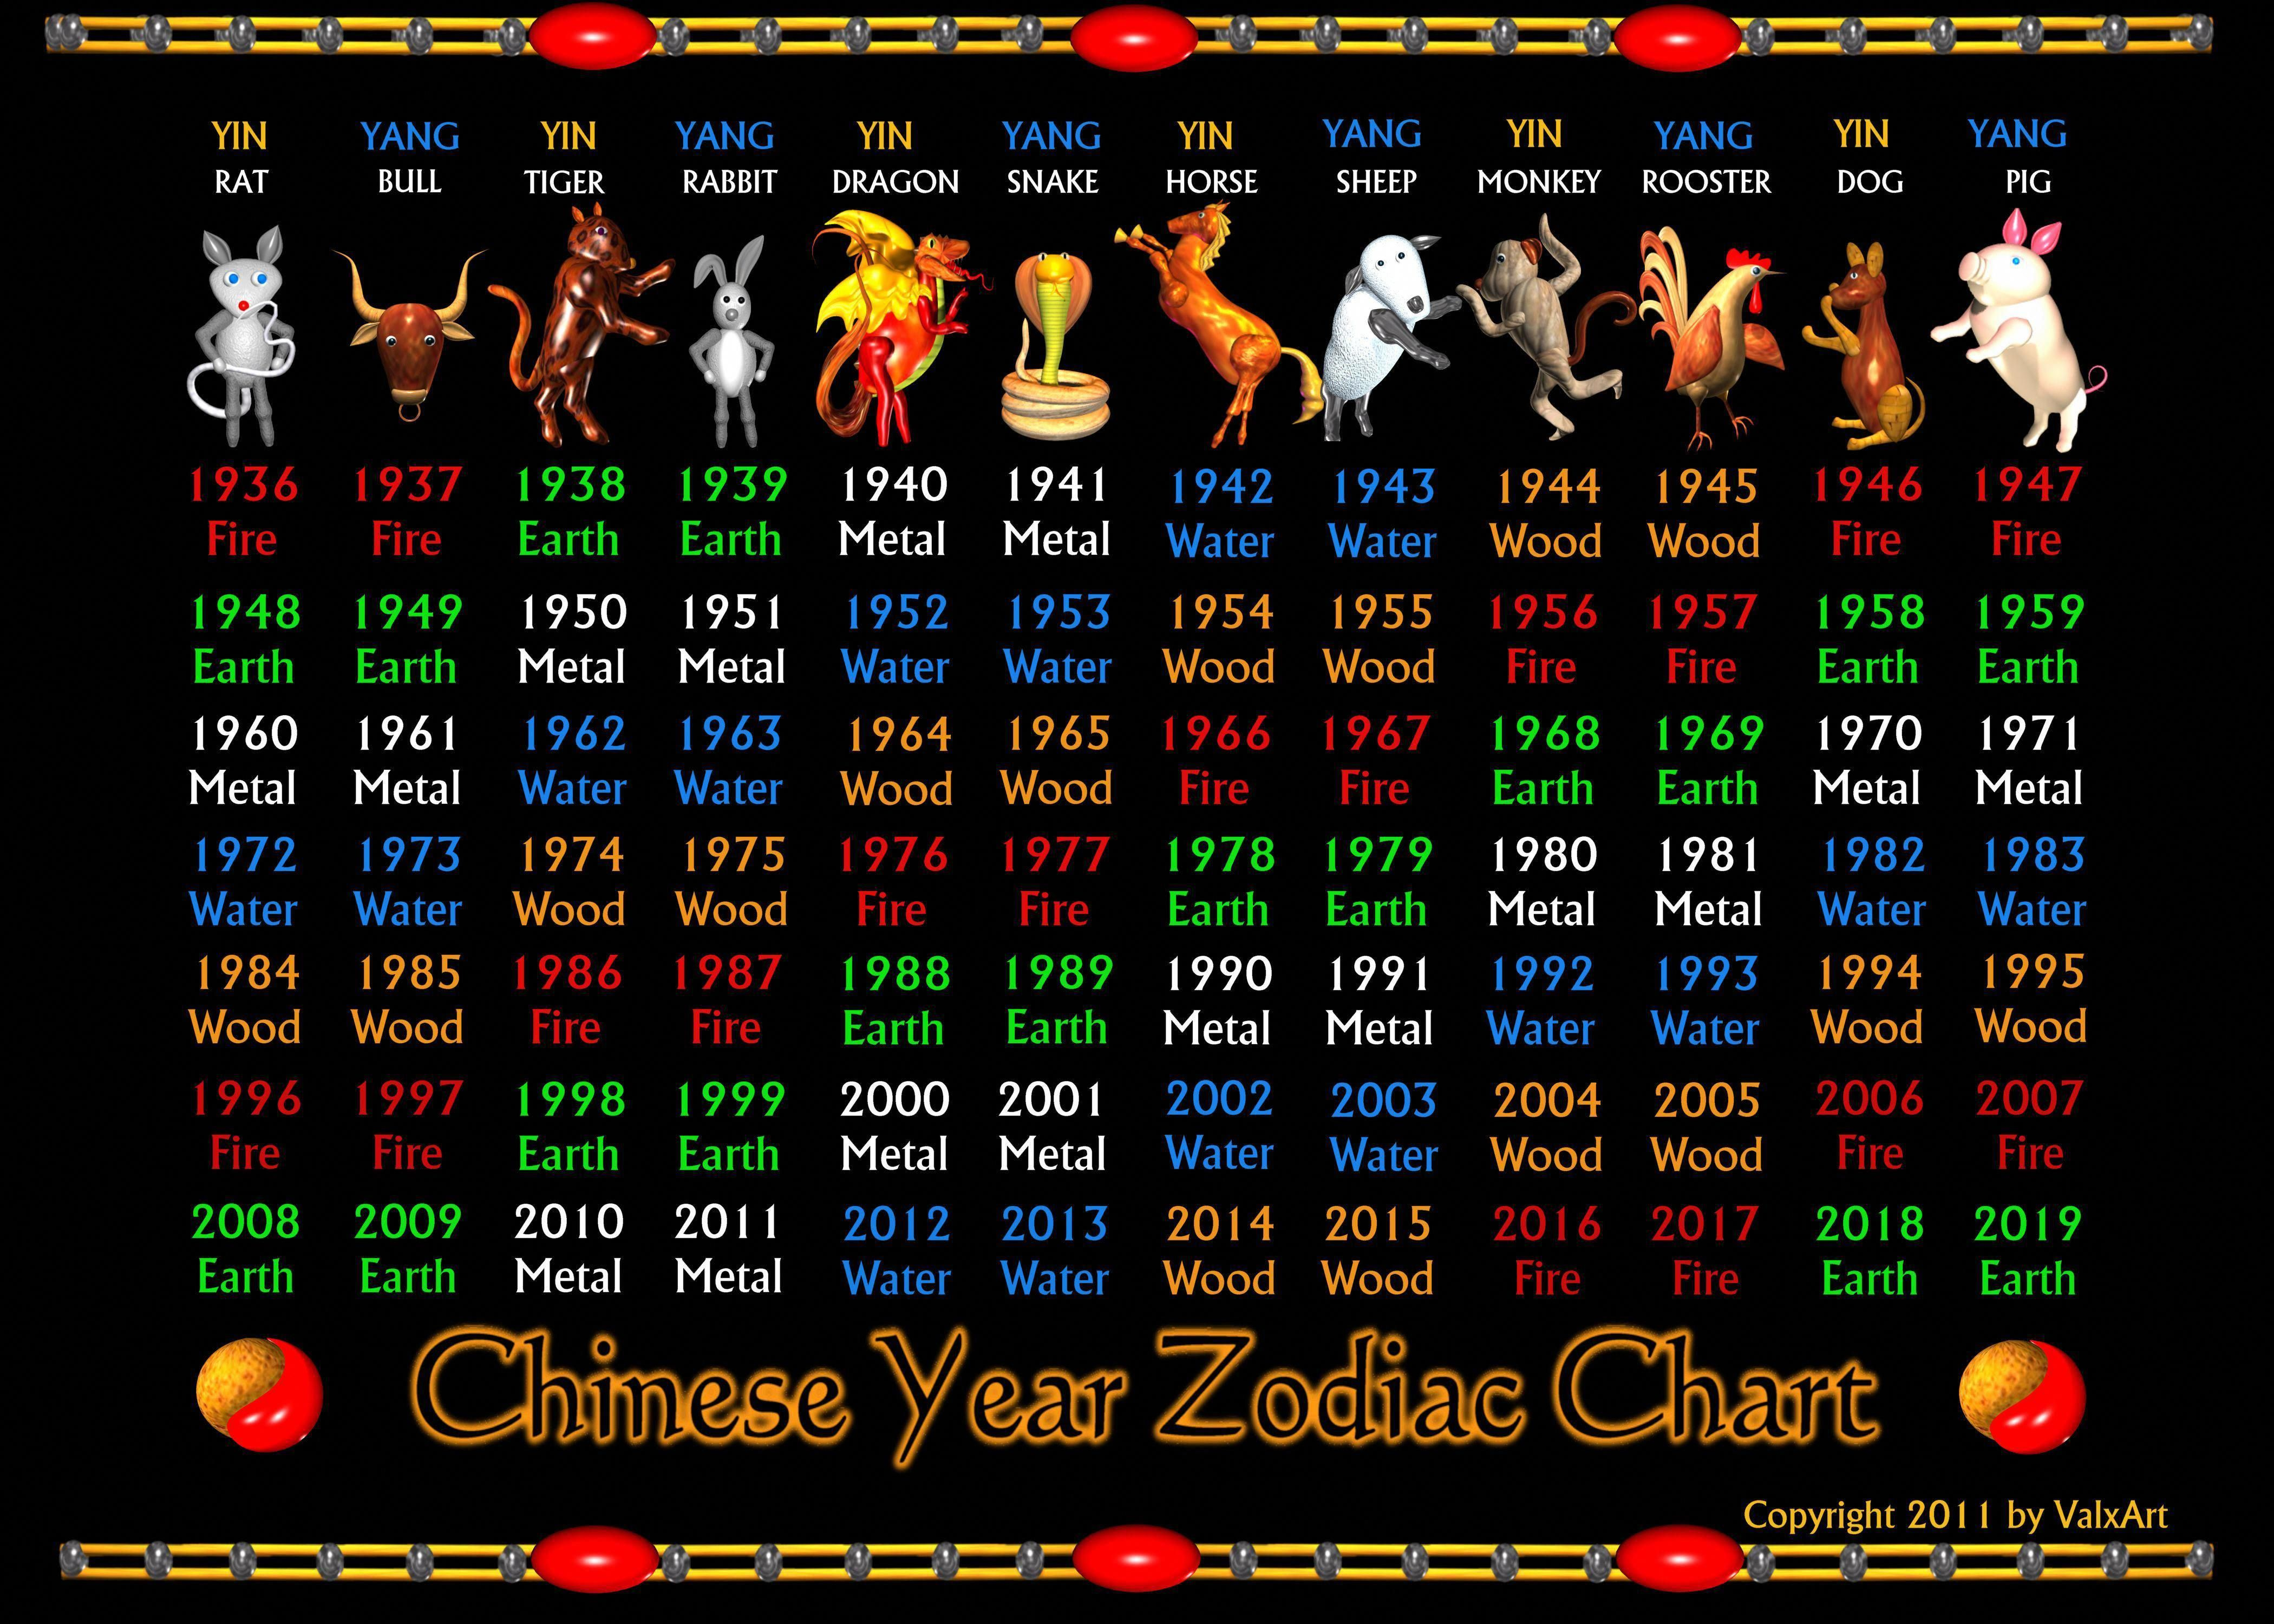 10+ 2011 year of the rabbit forecast the horse english edition information